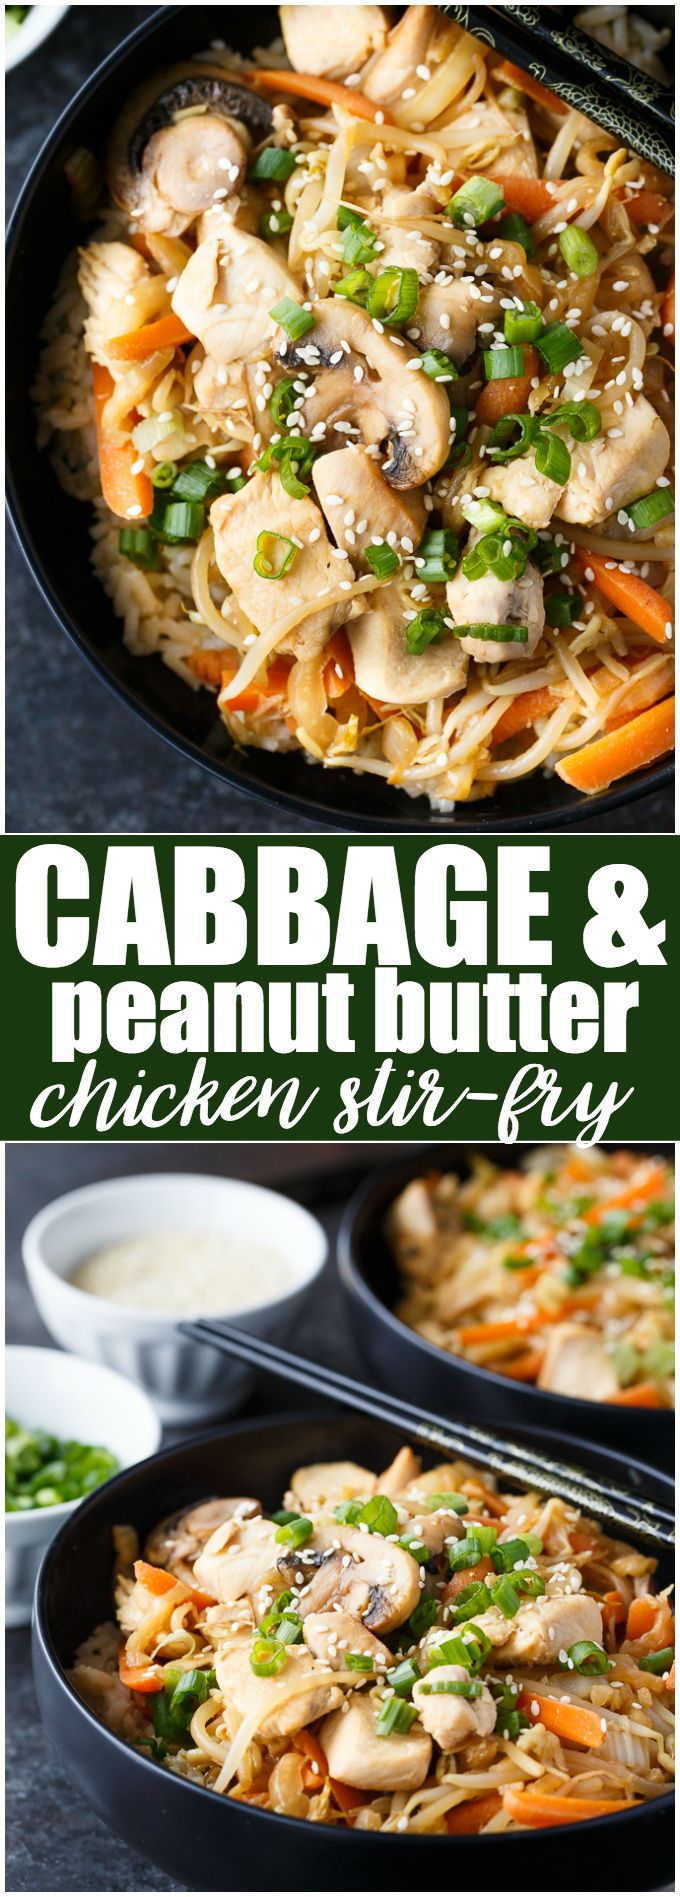 Cabbage & Peanut Butter Chicken Stir-fry - Packed full of healthy veggies like cabbage, bean sprouts and carrots with a unique flavourful sauce. The chicken adds a boost of protein. #ad #chickendotca